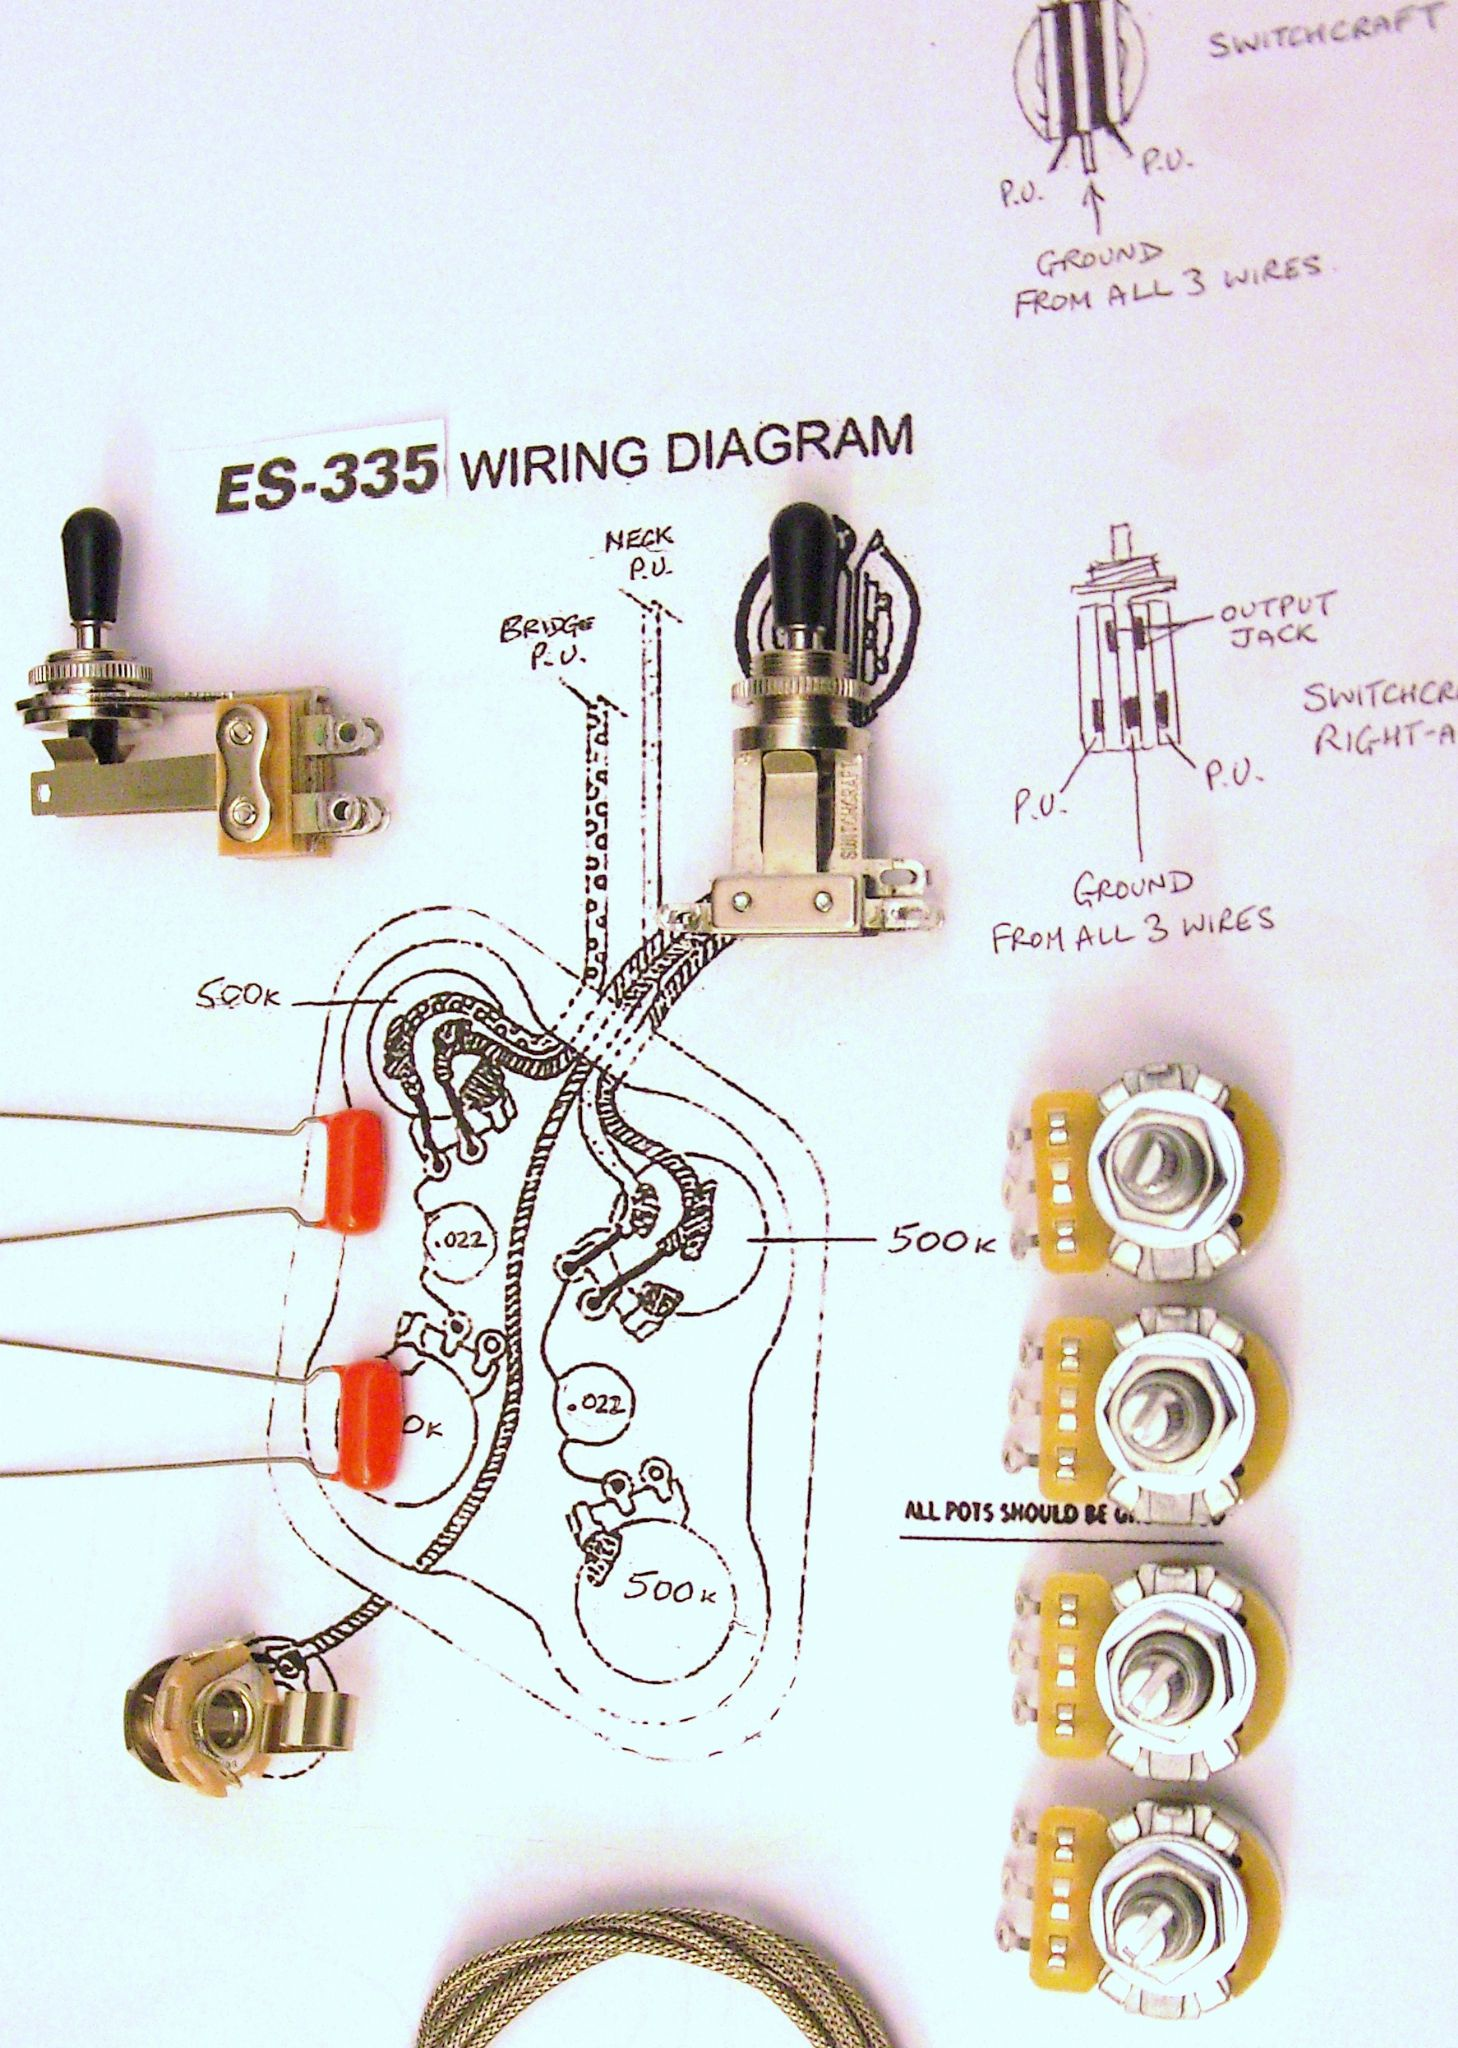 toggle switch wiring diagram 335 single pole switch wiring diagram rh bajmok co Harley Wiring Harness Diagram Harley Wiring Harness Diagram